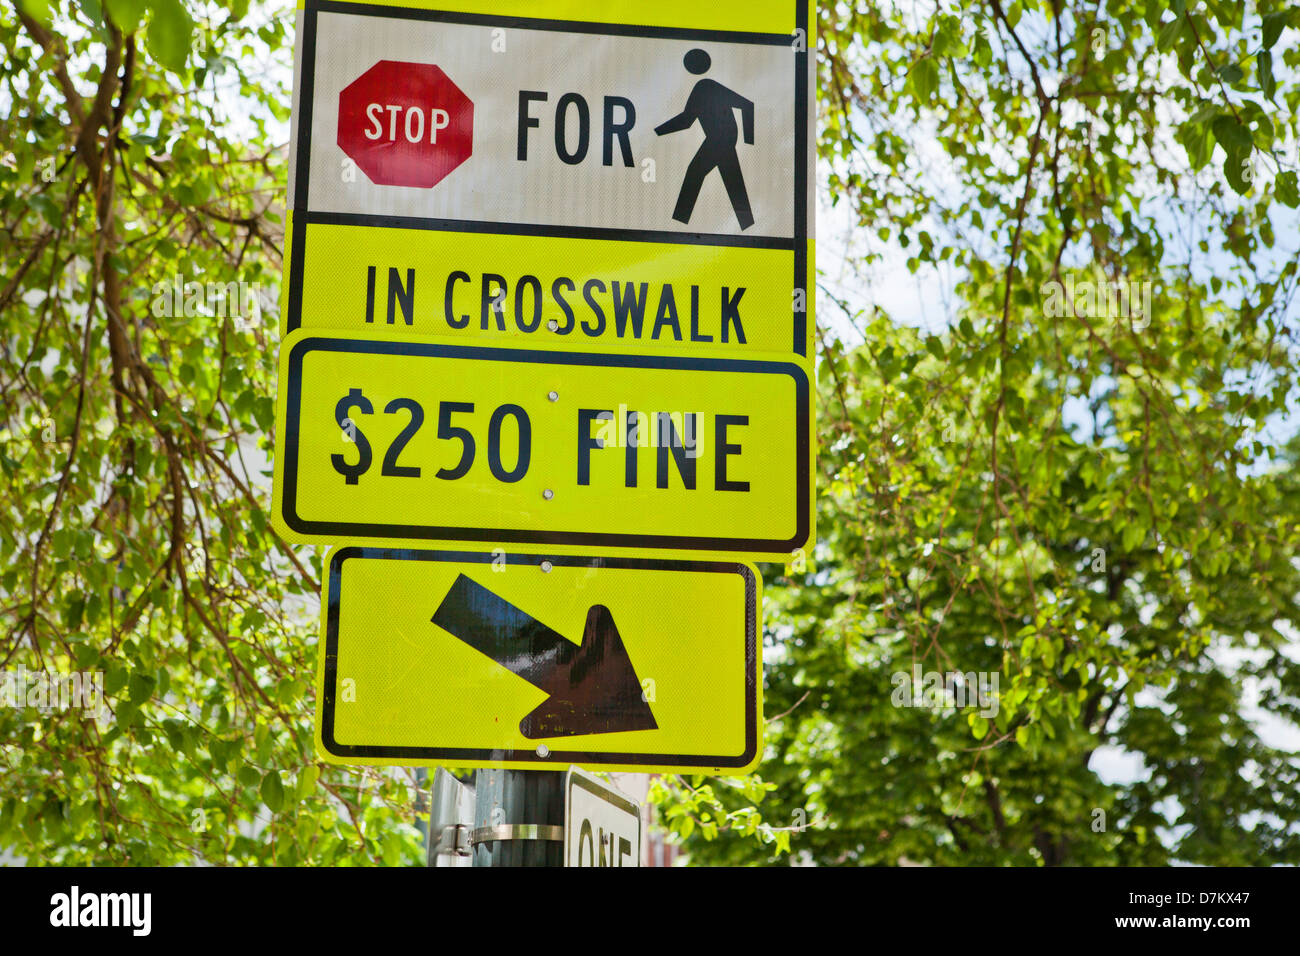 Pedestrian crosswalk warning sign - Stock Image